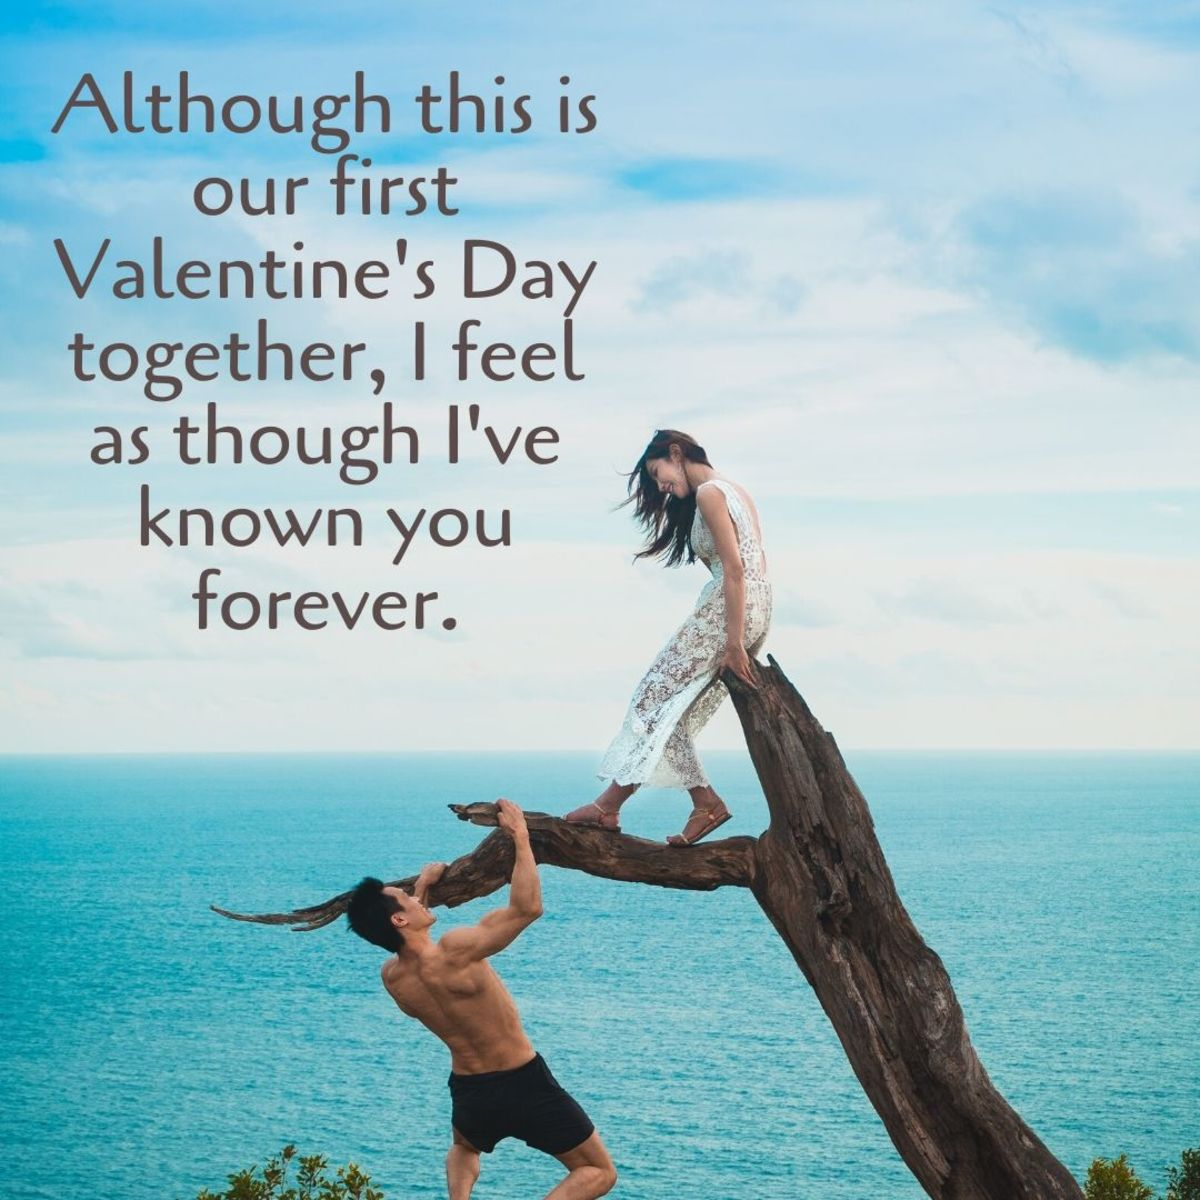 If this is your first Valentine's Day together, let your girlfriend know she's important to you with a sweet, heartfelt message.